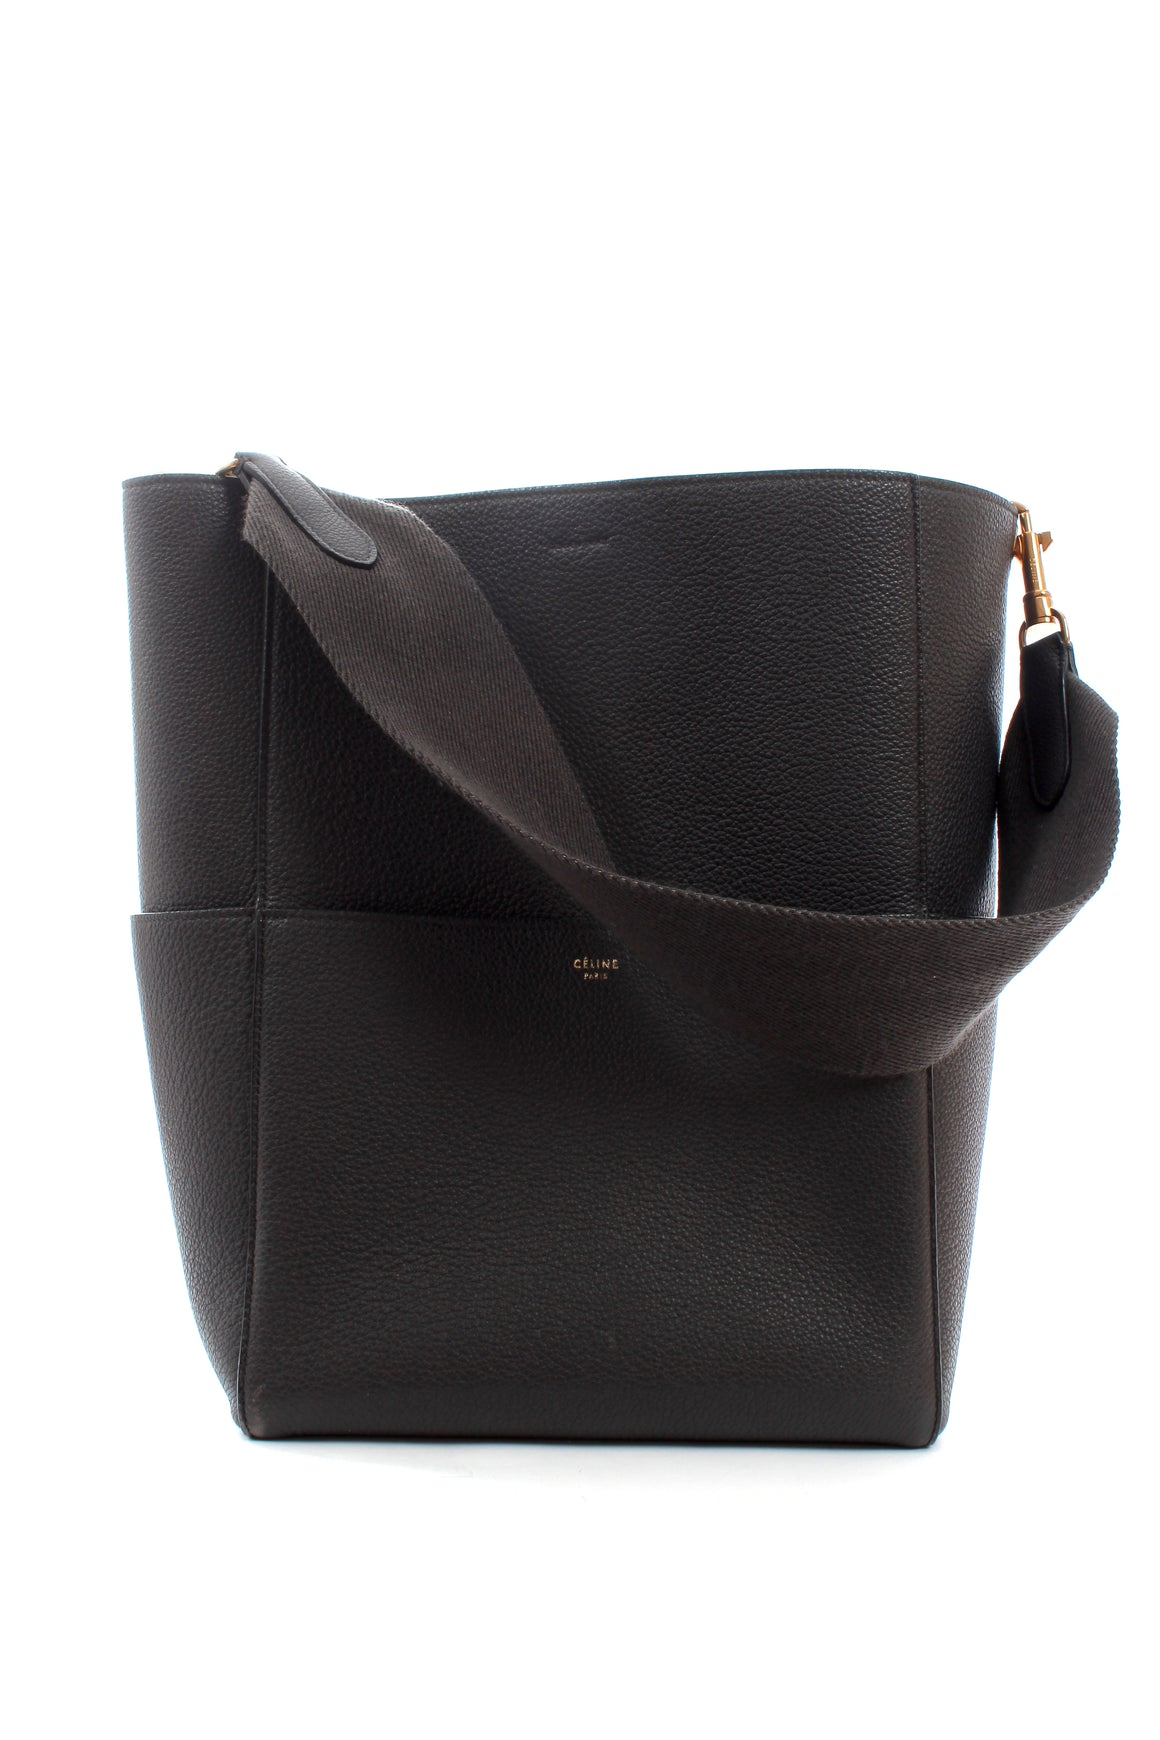 Celine Sangle Bucket Bag in Grained Calfskin Leather - Current Season